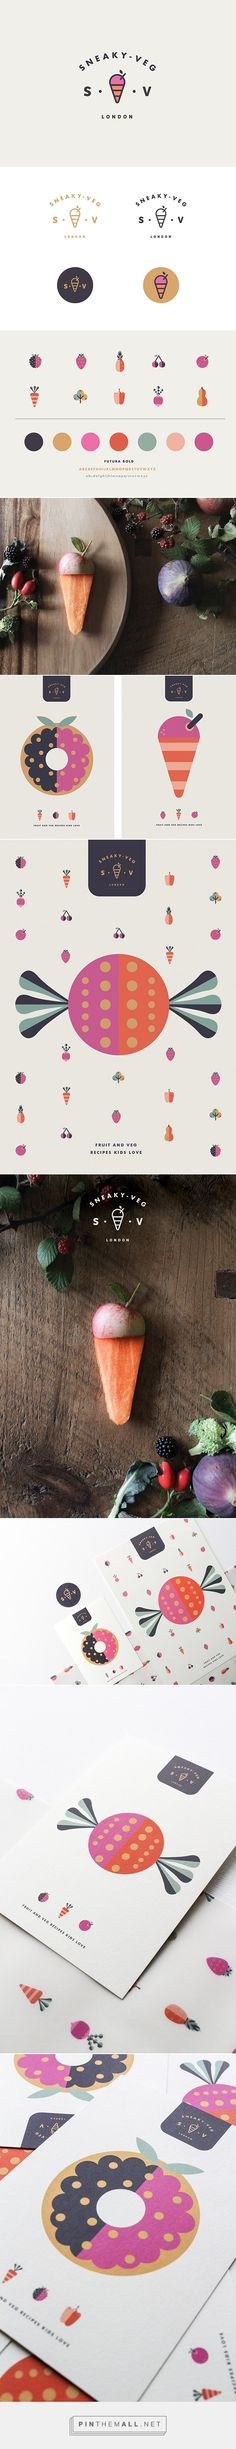 Sneaky Veg brand identity and #stationery design on Behance.